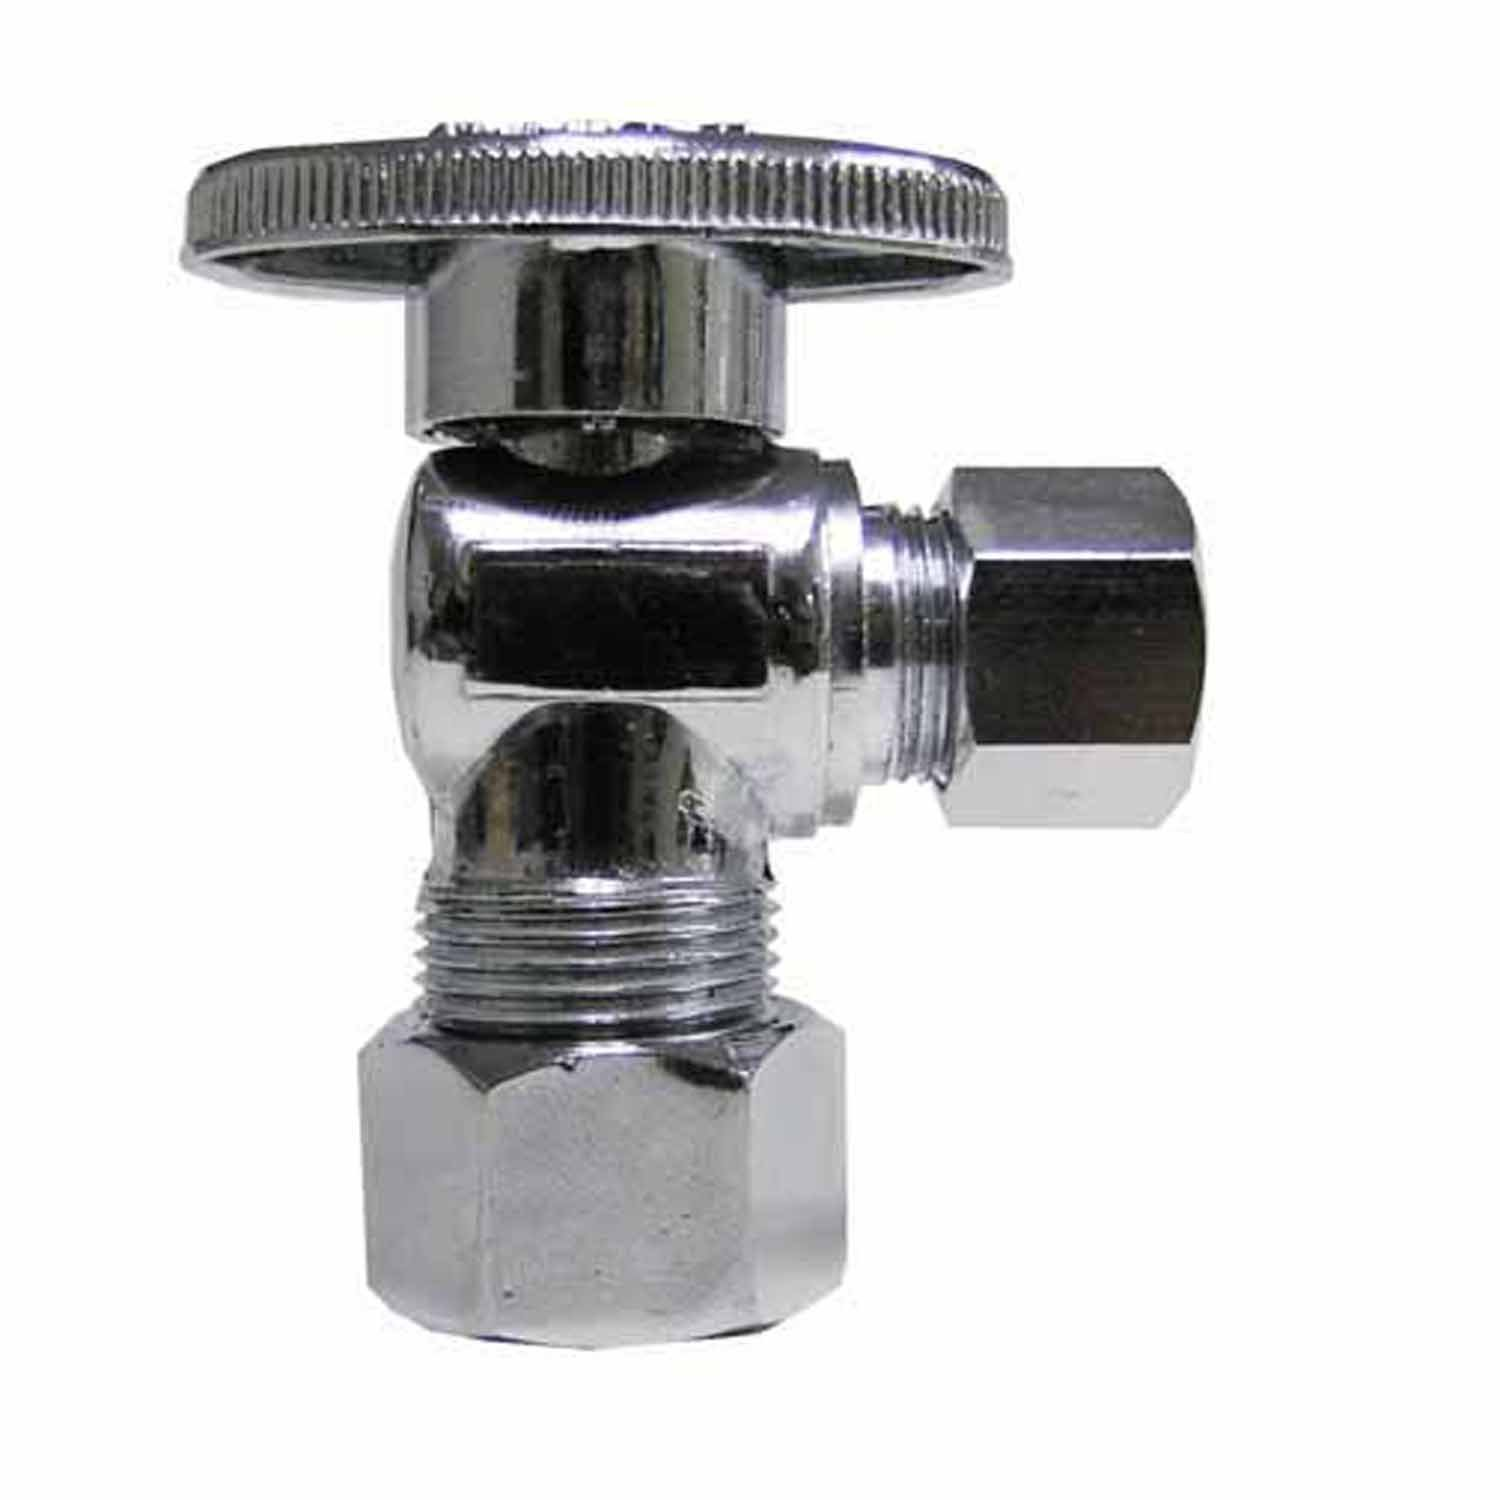 watts lfpbqt 210 quarter turn angle valve 5 8 inch od by 3 8 inch